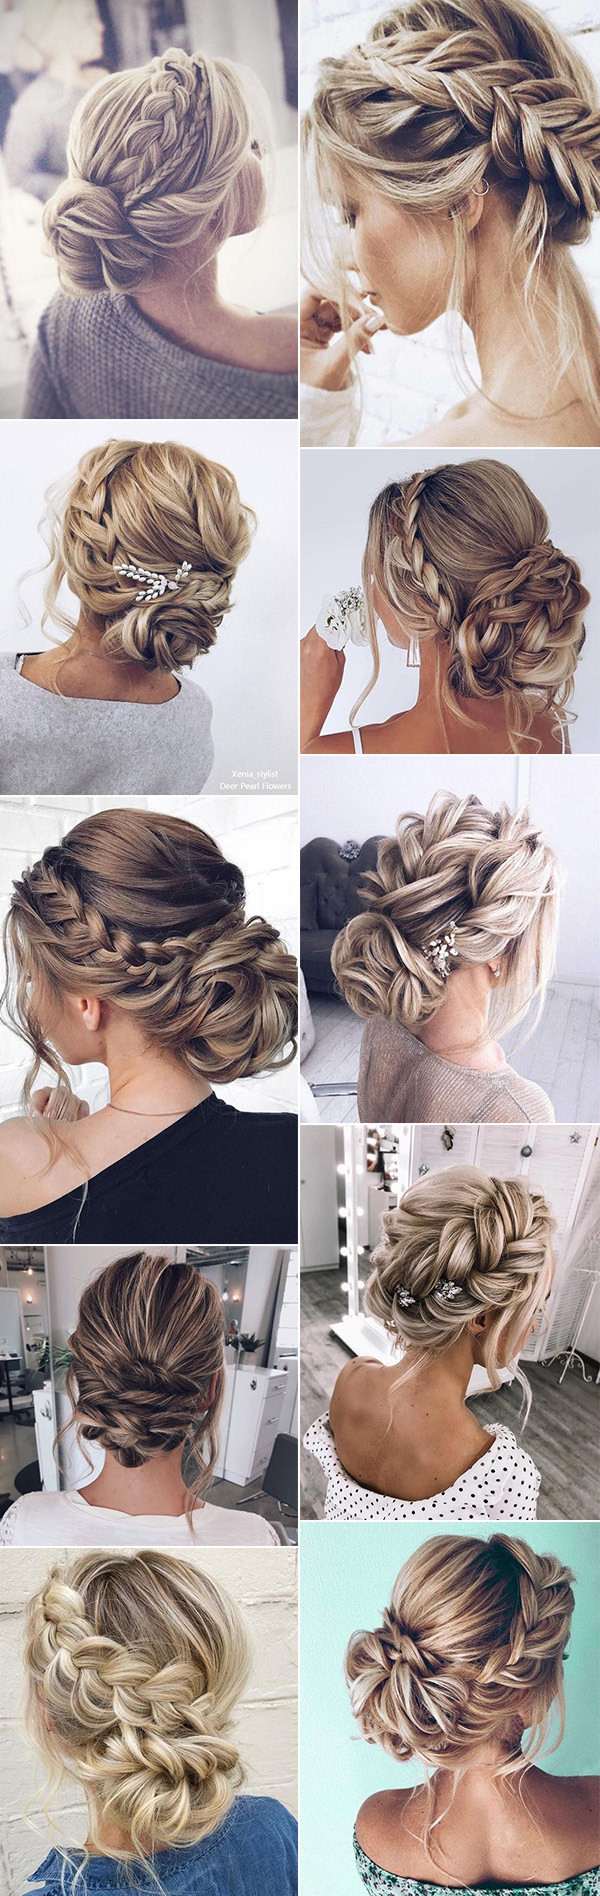 Braided Updo Wedding Hairstyles Archives Oh Best Day Ever